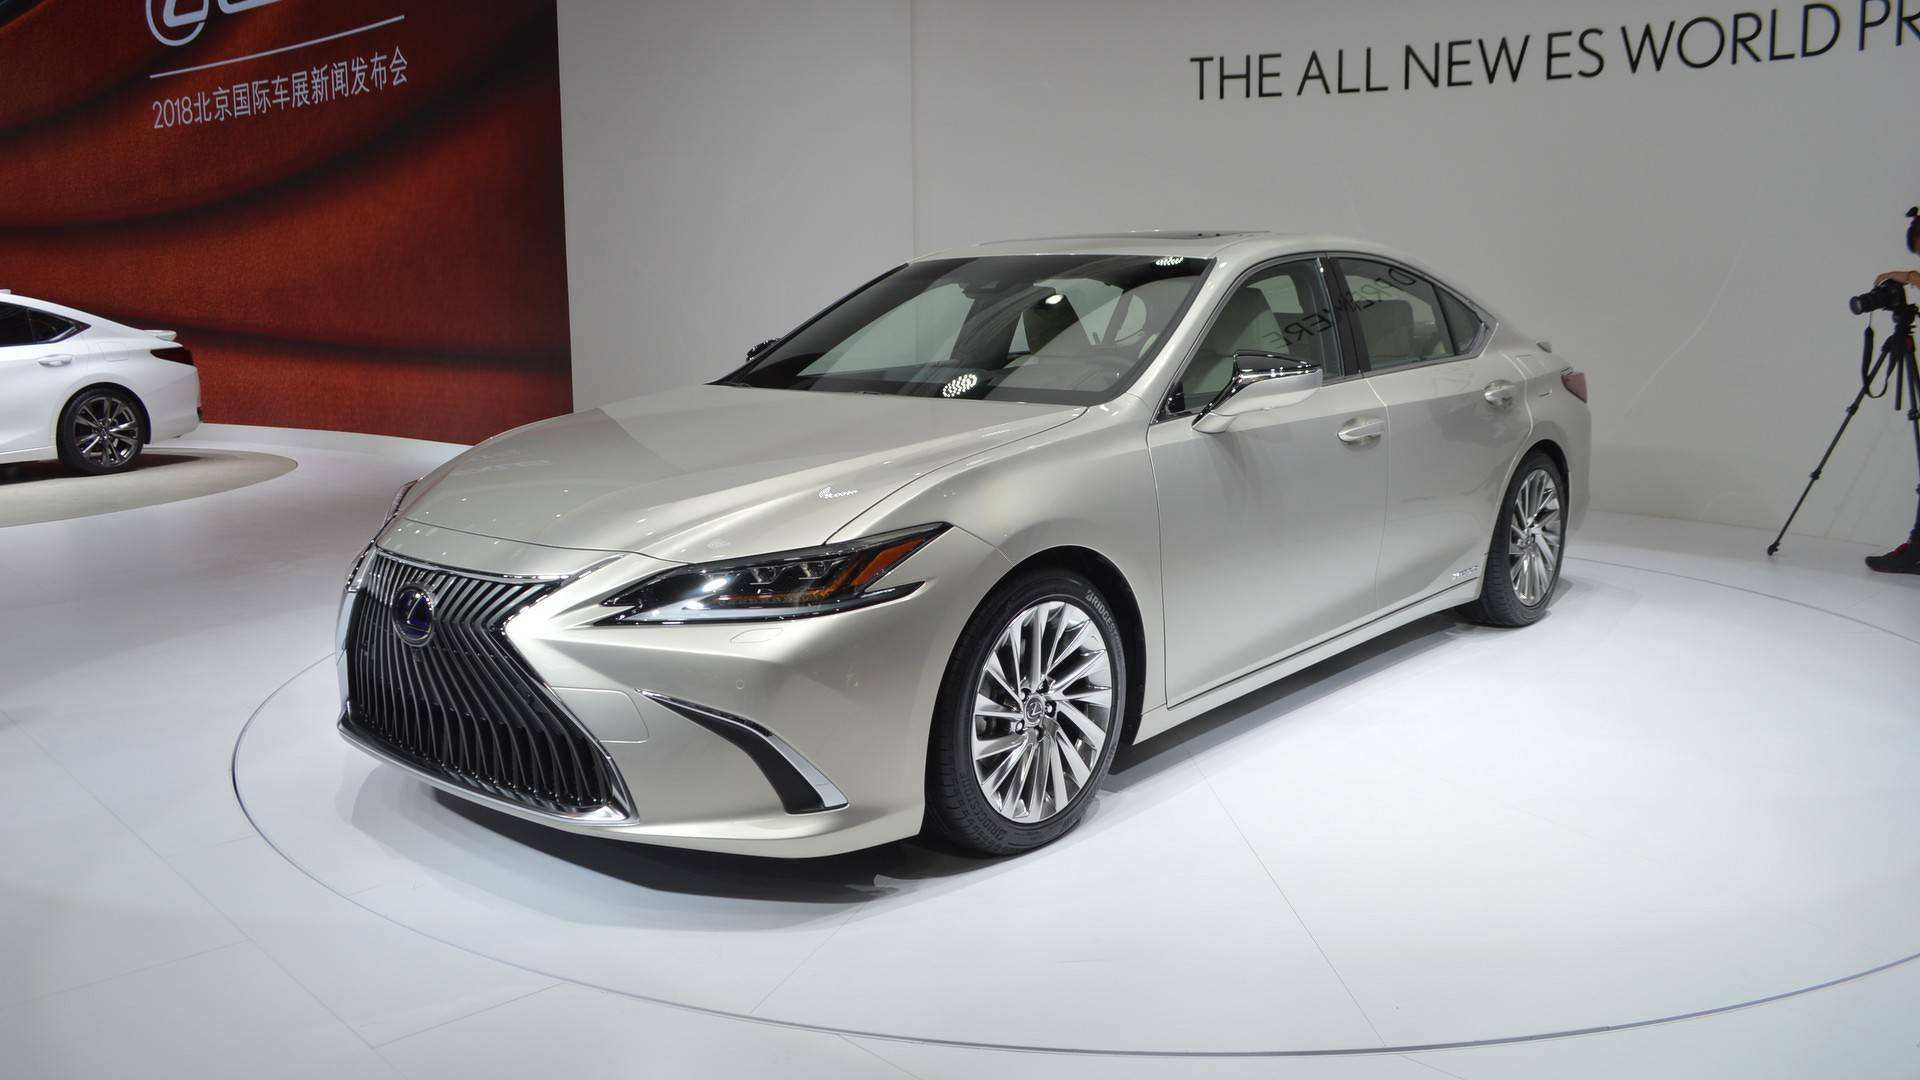 63 New Best 2019 Lexus Lineup Redesign And Price Overview by Best 2019 Lexus Lineup Redesign And Price